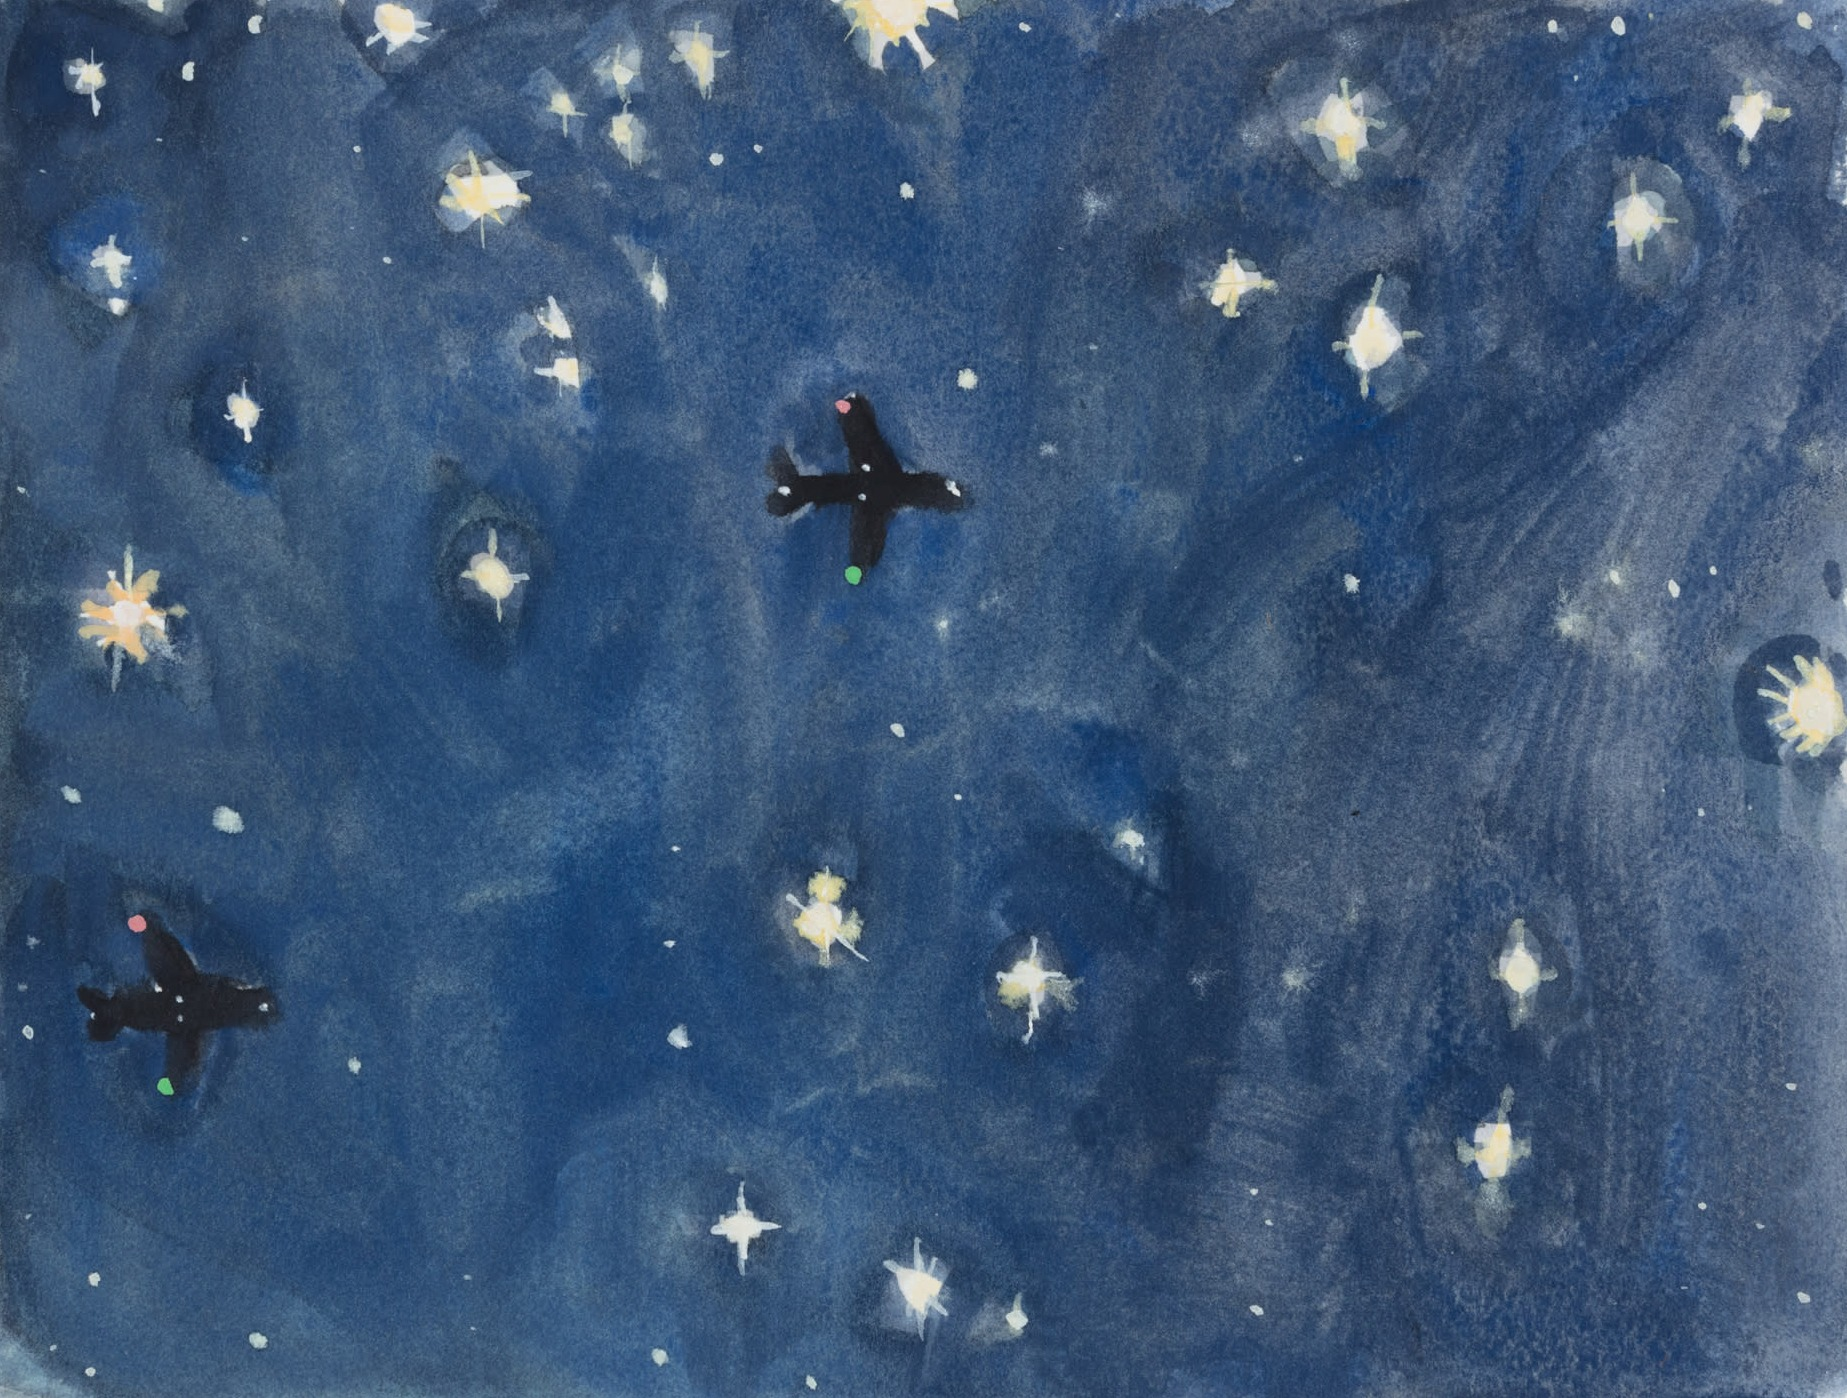 A painting by Claudia Keep titled Looking Up / November 7, 2020, 6:56 PM, Bucks County, Pennsylvania, dated 2020.